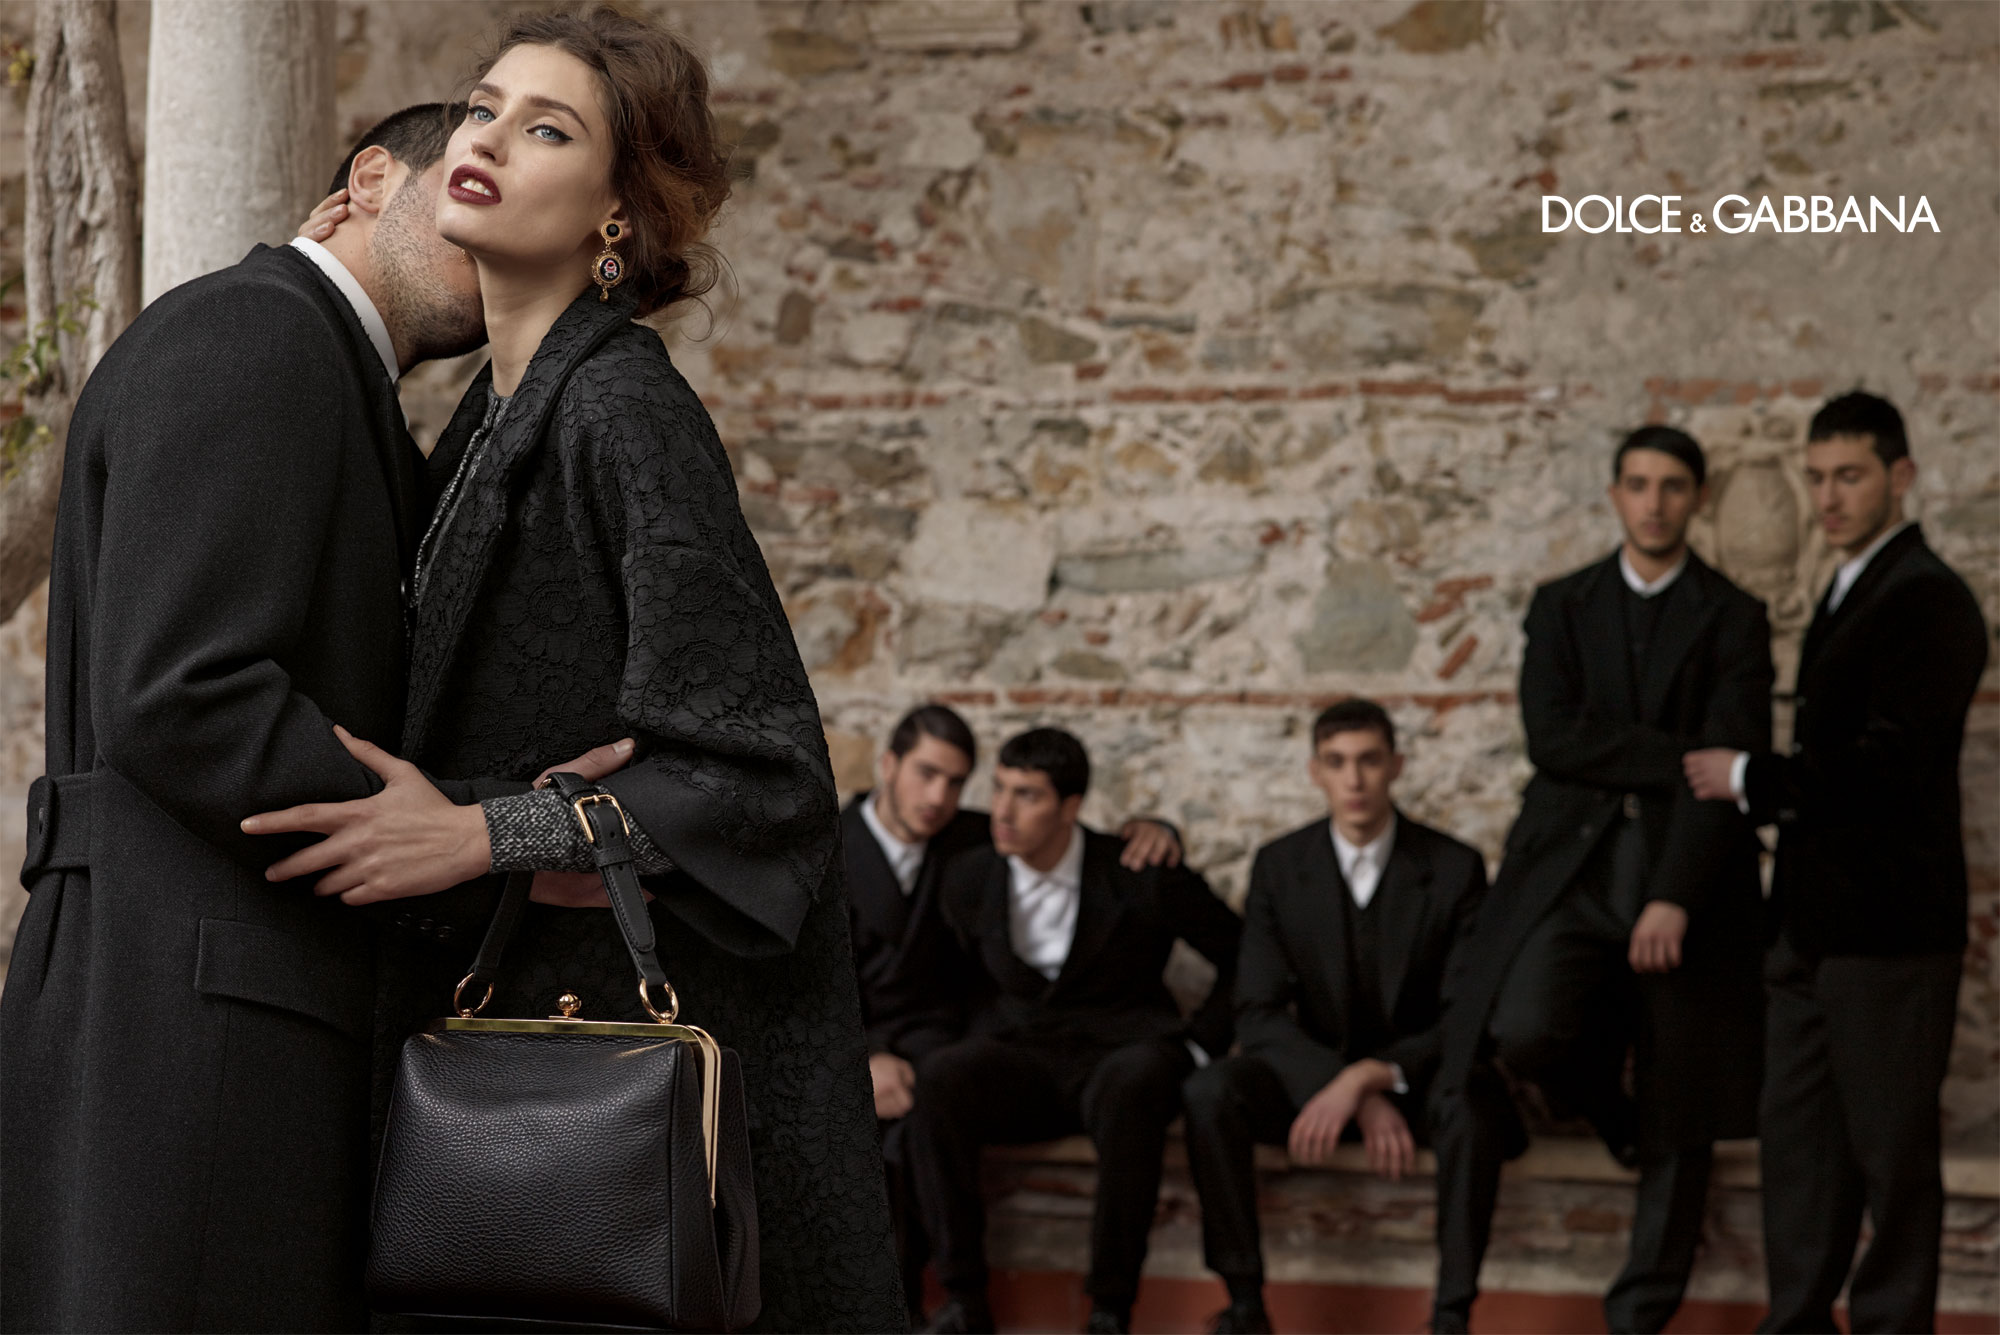 Dolce And Gabbana Fw 2014 Women Adv Campaign 10